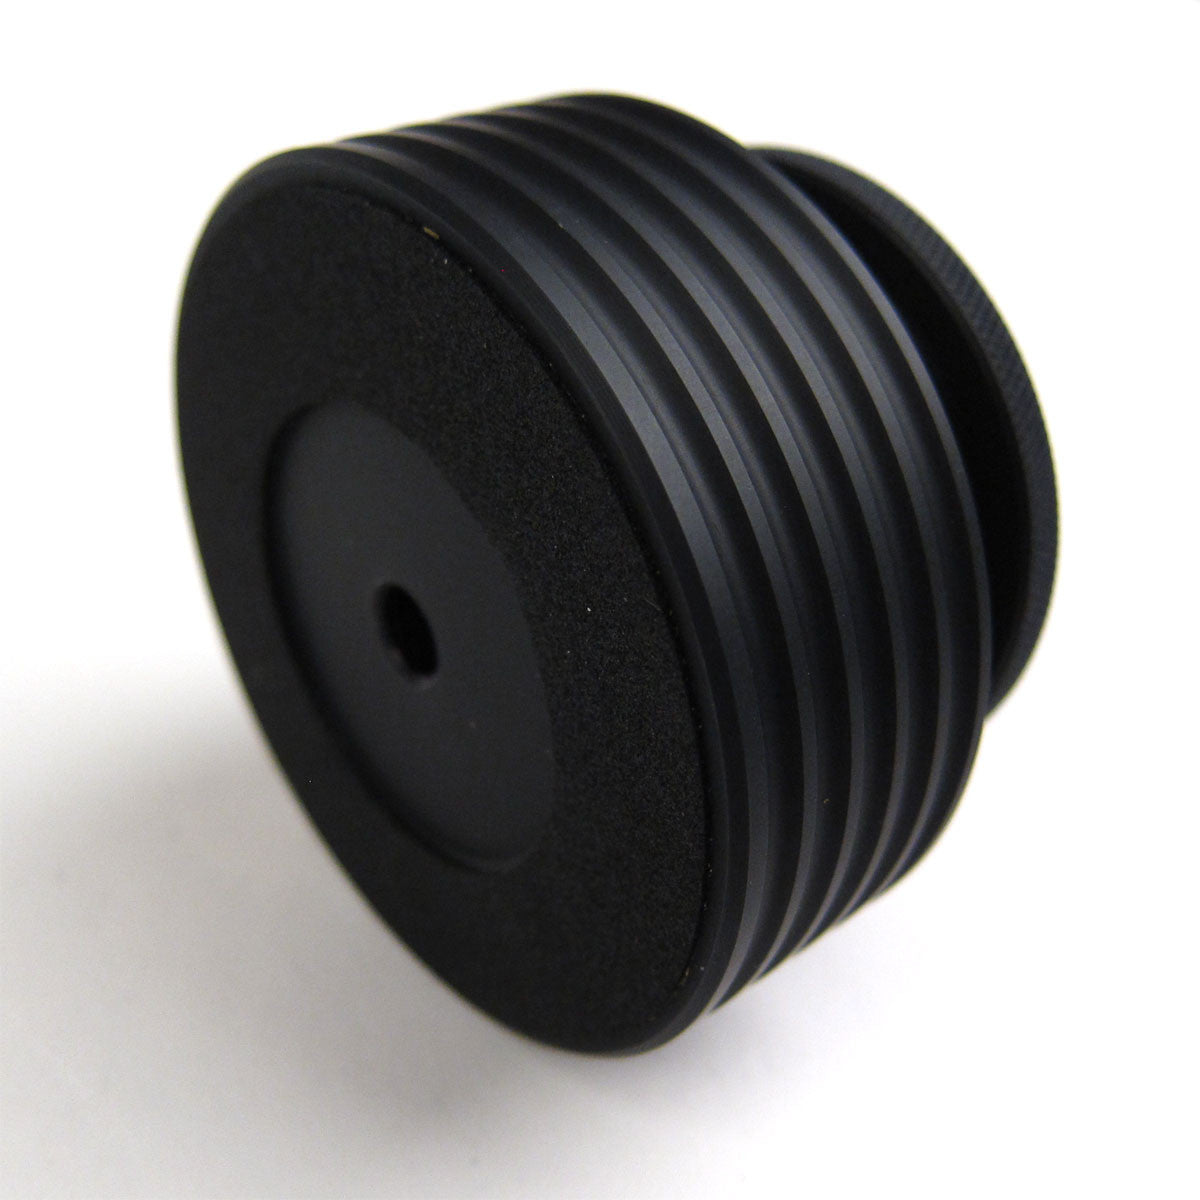 Mastersounds: Turntable Weight - Black / Blue Print